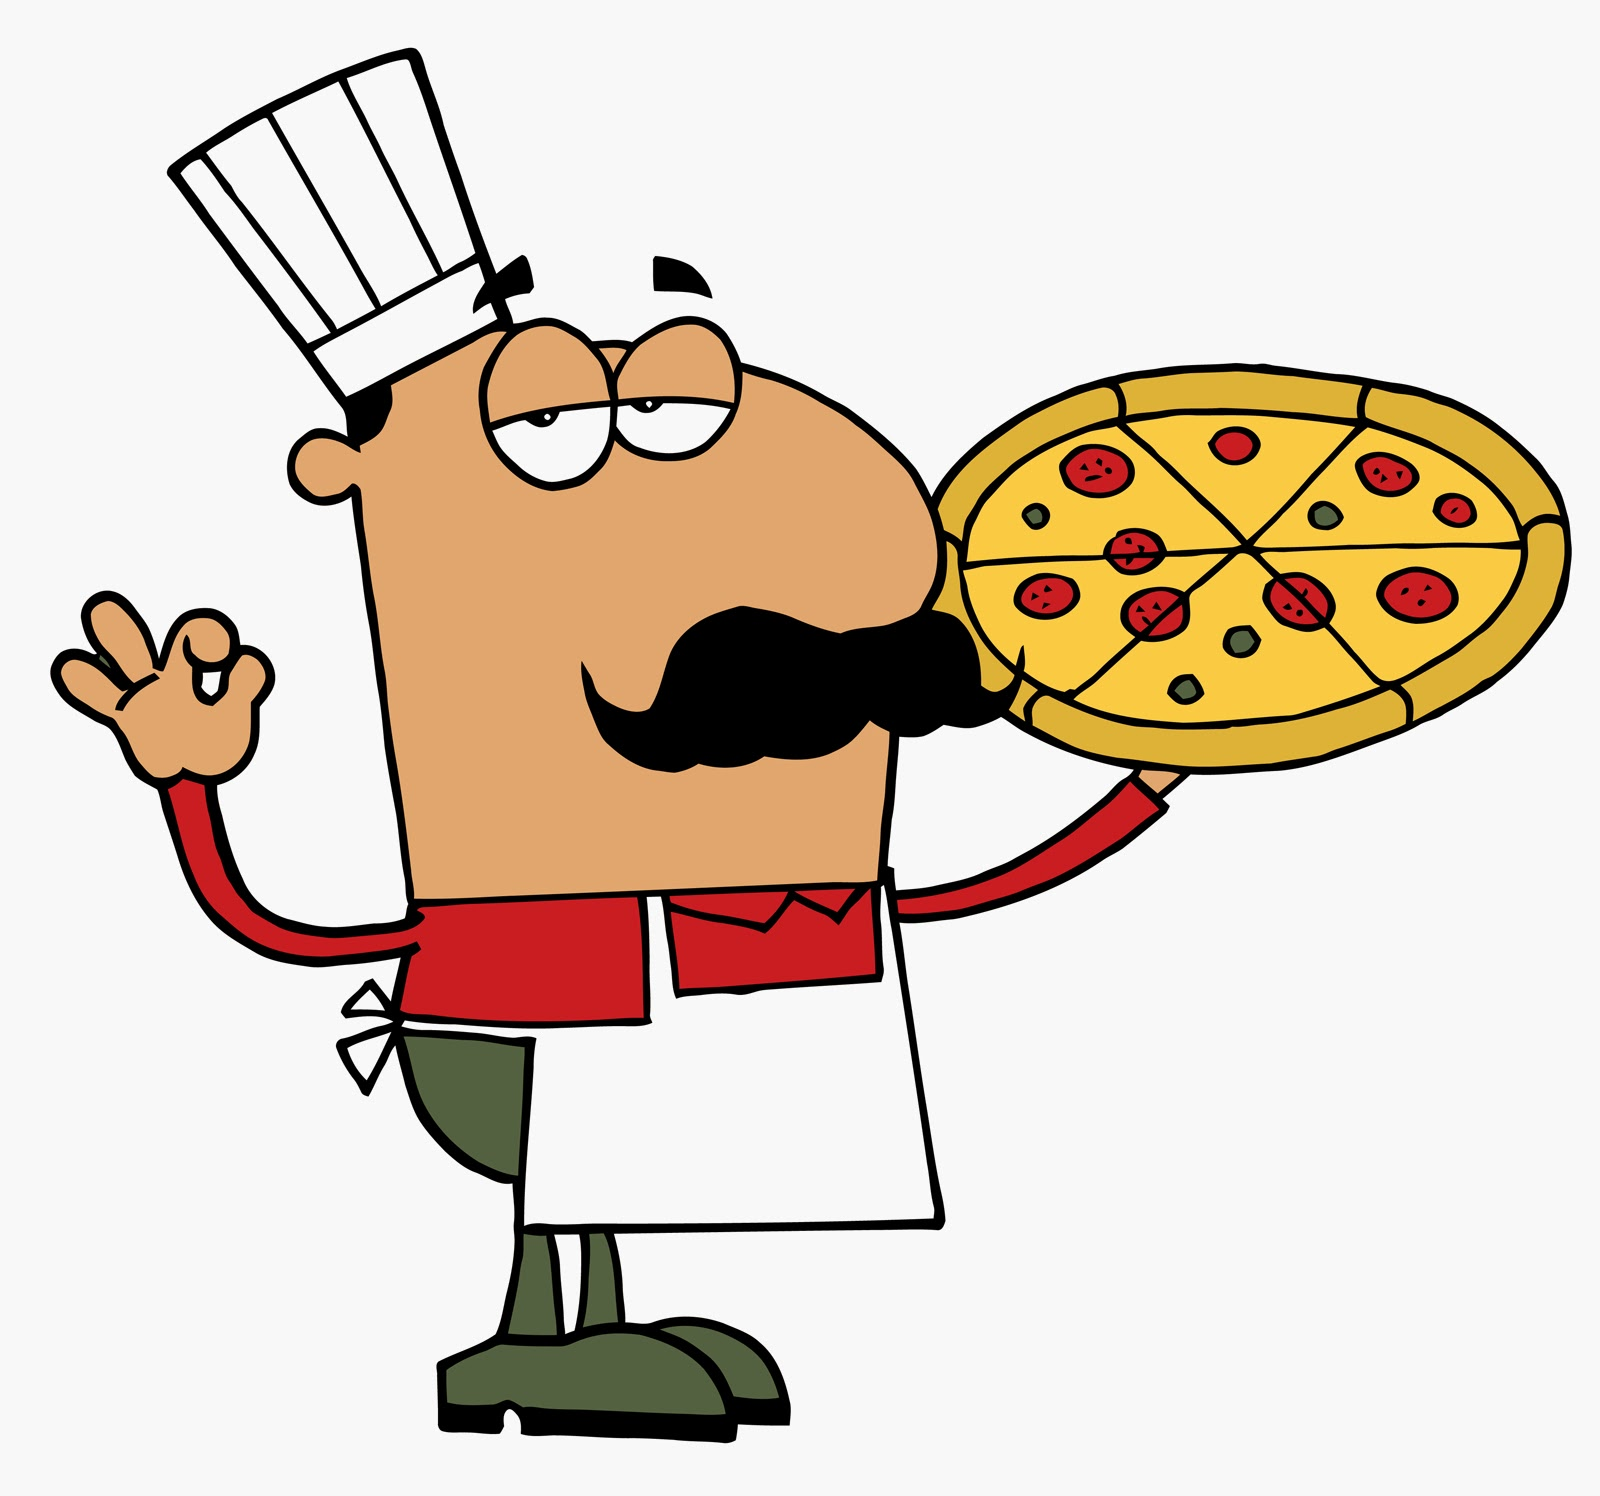 Kids with pizza clipart picture freeuse download Kids with pizza clipart - ClipartFest picture freeuse download